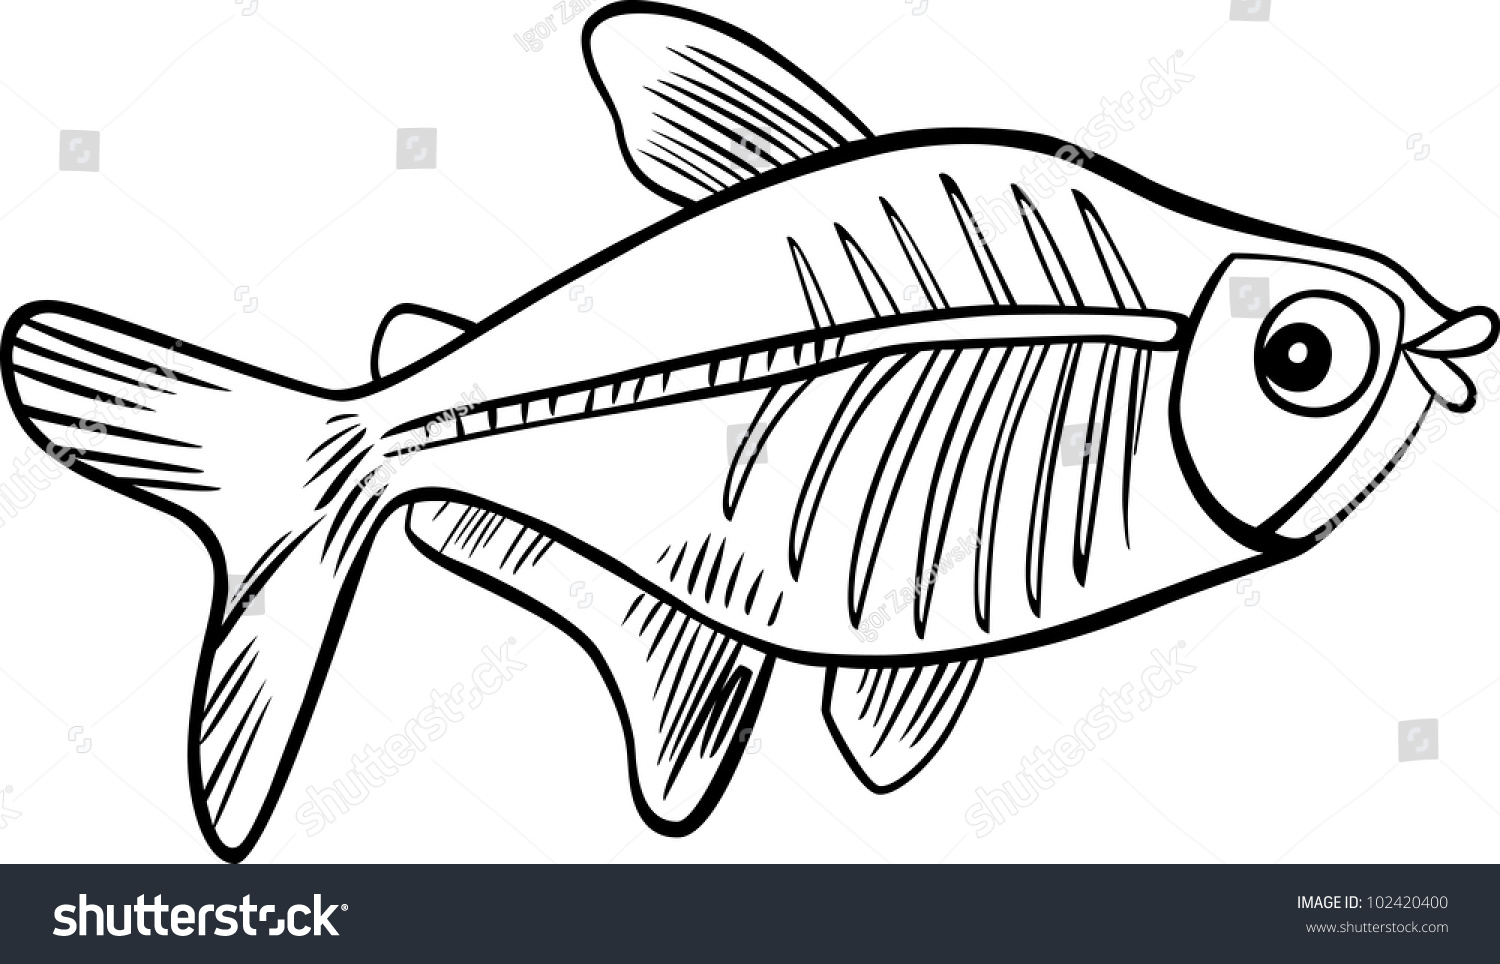 X ray coloring sheets -  Xray Fish Coloring Book Stock Illustration Download